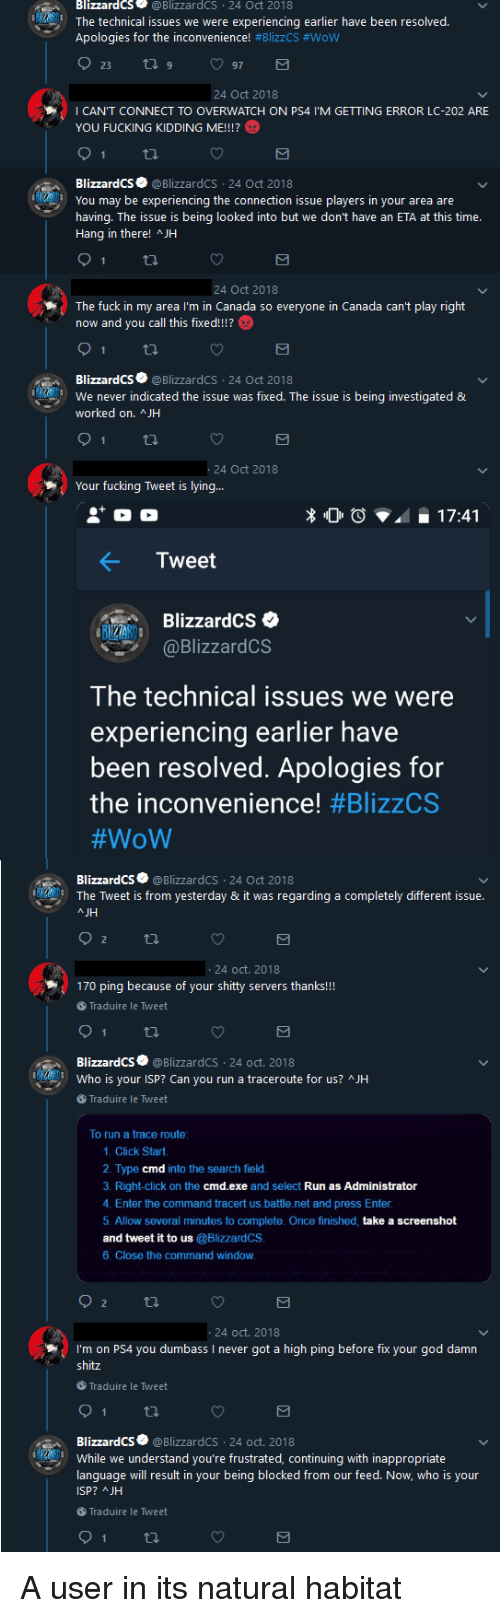 BlizzardCS 24 Oct 2018 the Technical Issues We Were